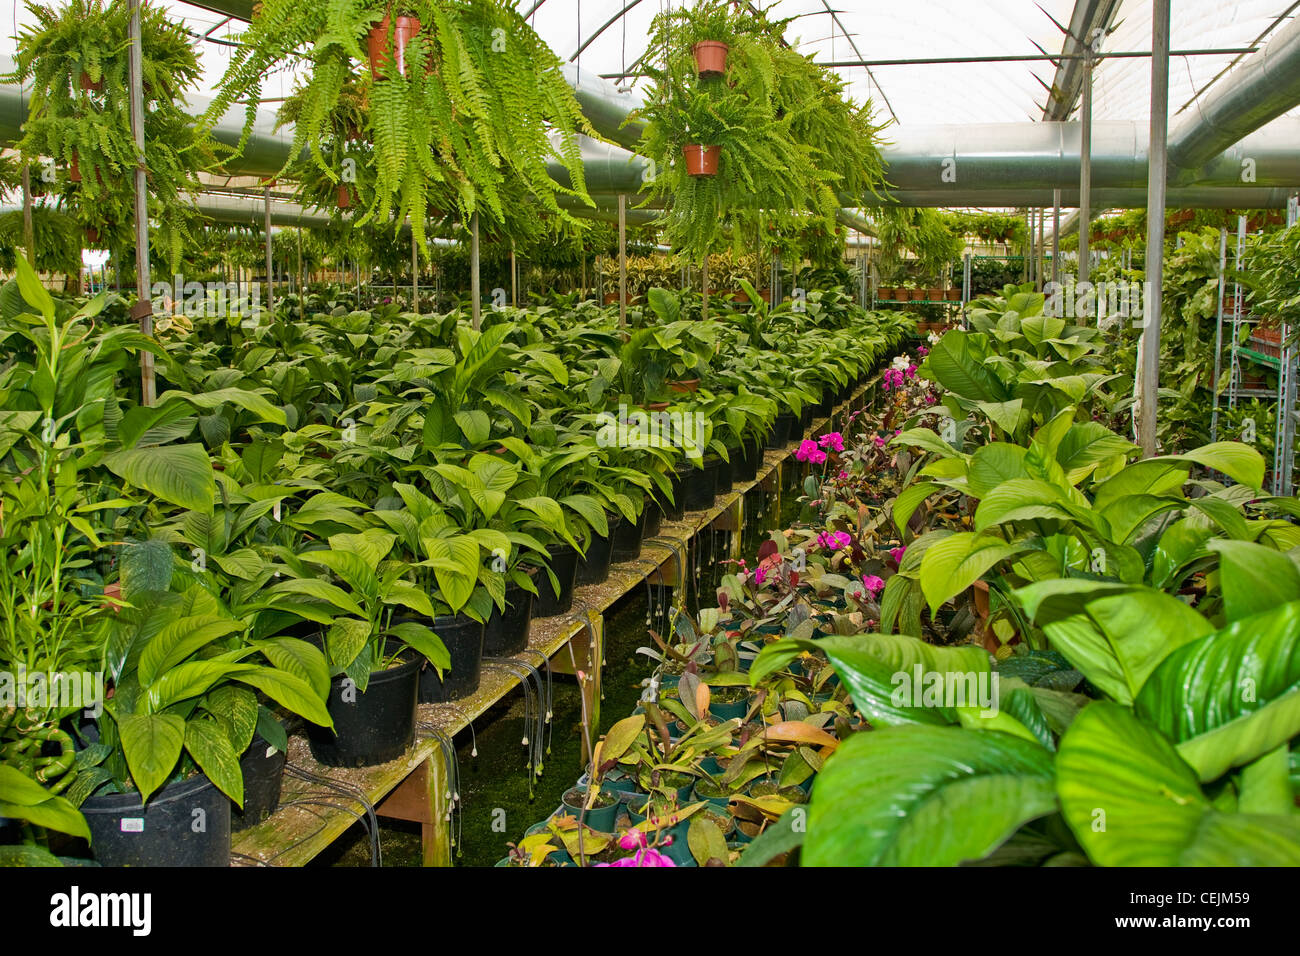 Potted Garden Agriculture potted garden plants in a nursery greenhouse near agriculture potted garden plants in a nursery greenhouse near lodi california usa workwithnaturefo